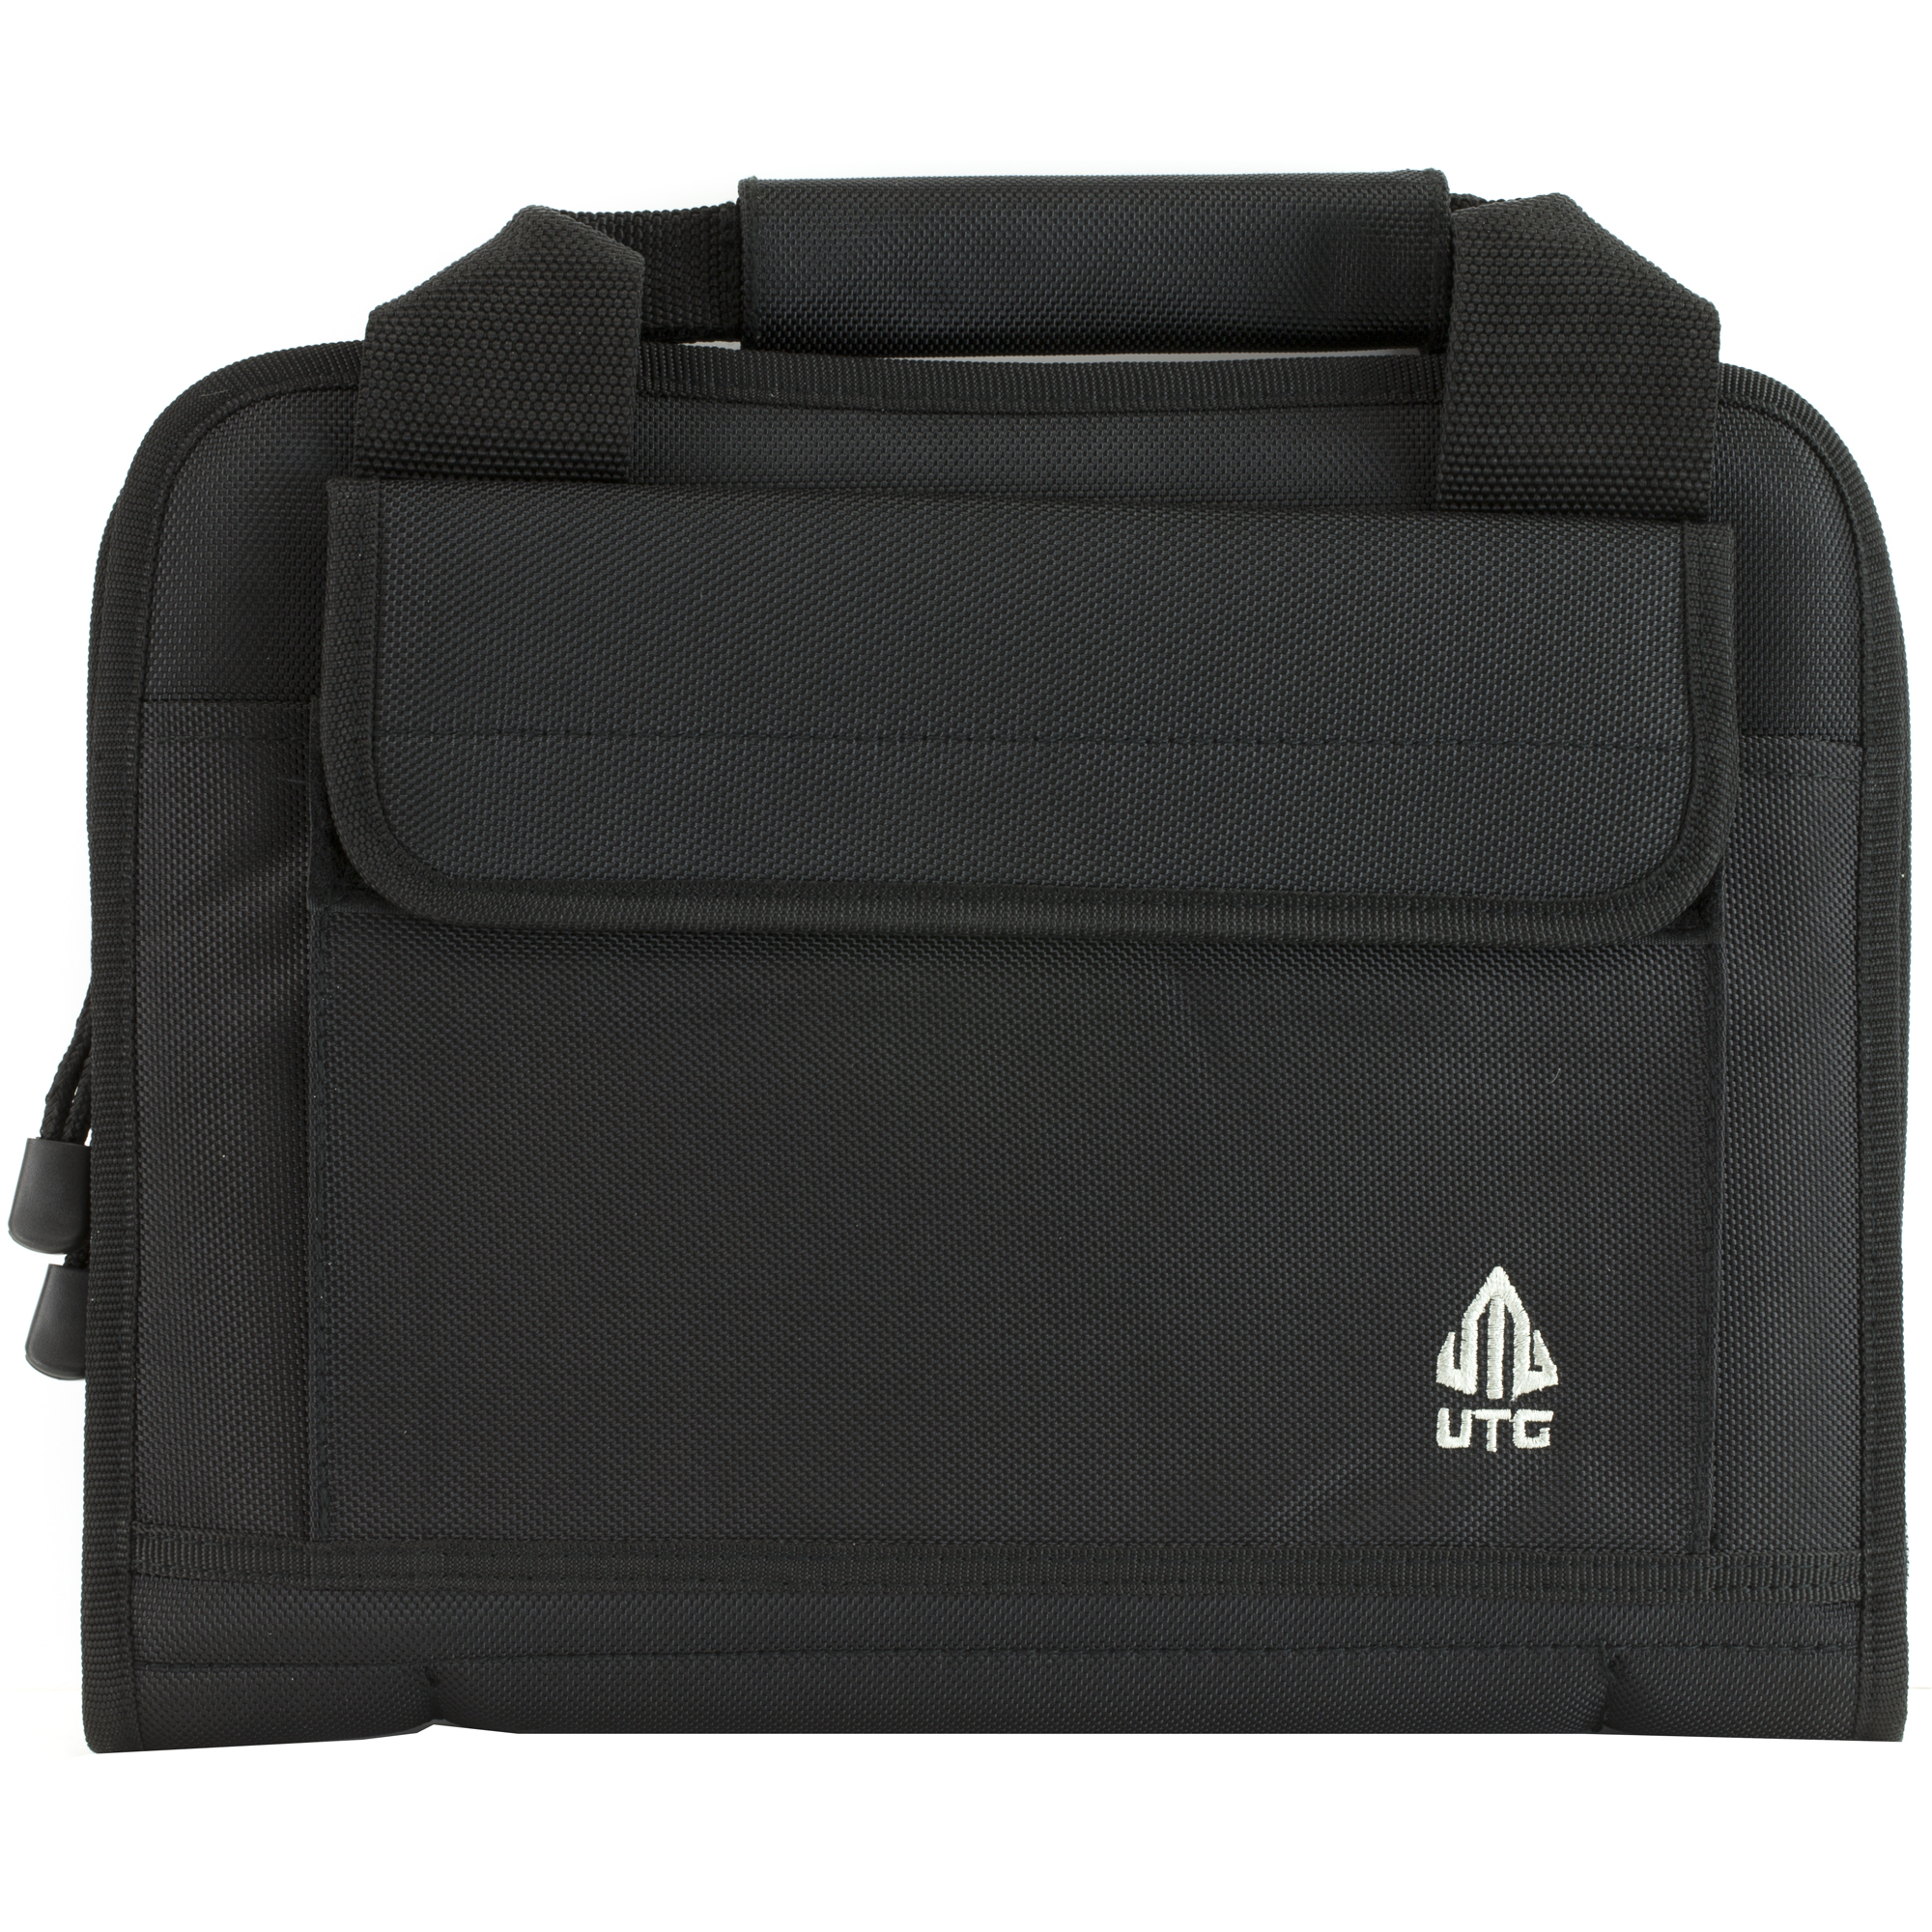 The UTG Homeland Security Deluxe Single Pistol Case features durable 1680D polyester construction and has six integral magazine pouches that fit most double and single stack magazines.